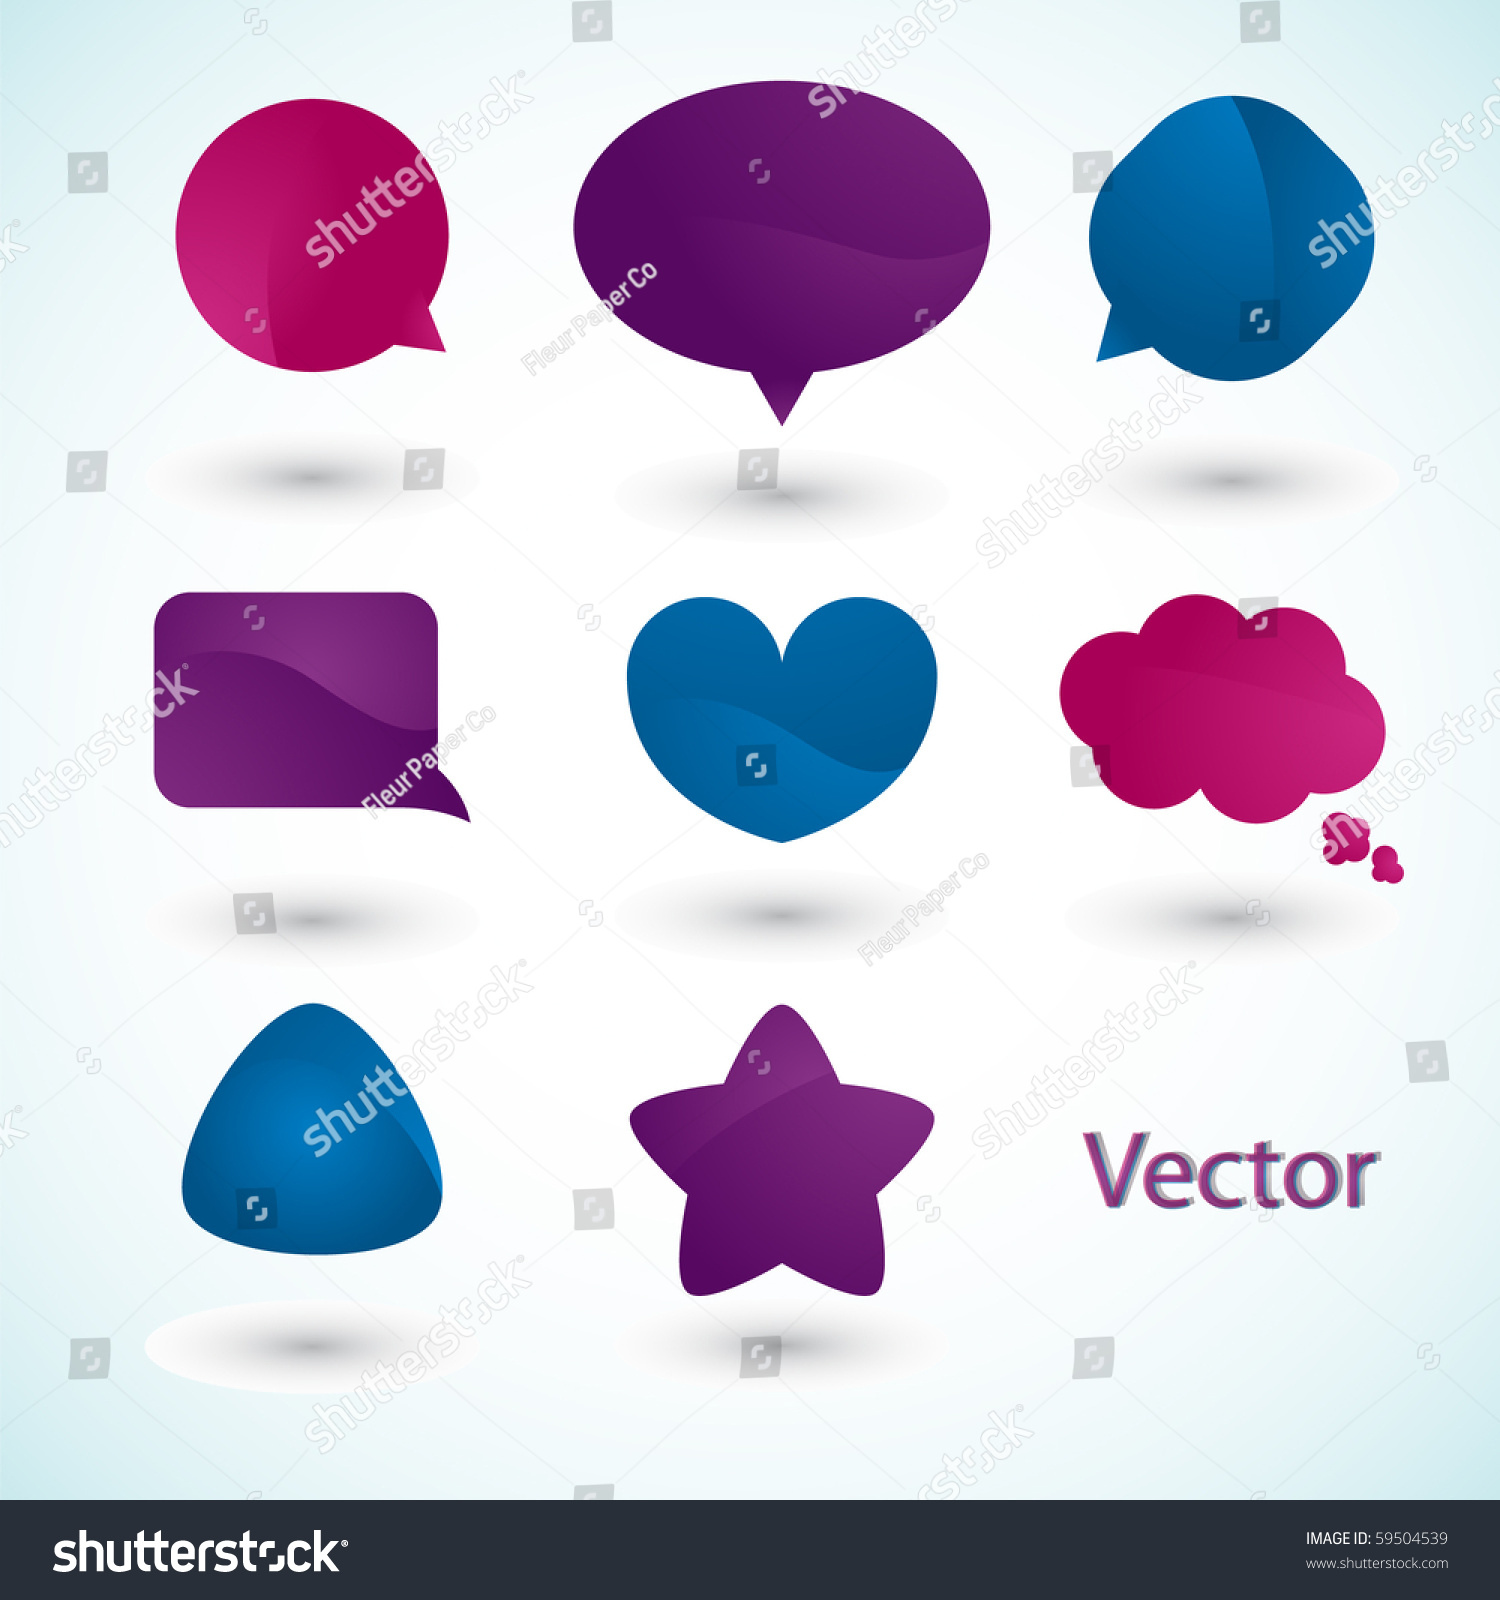 Speech Bubbles. Stock Vector Illustration 59504539